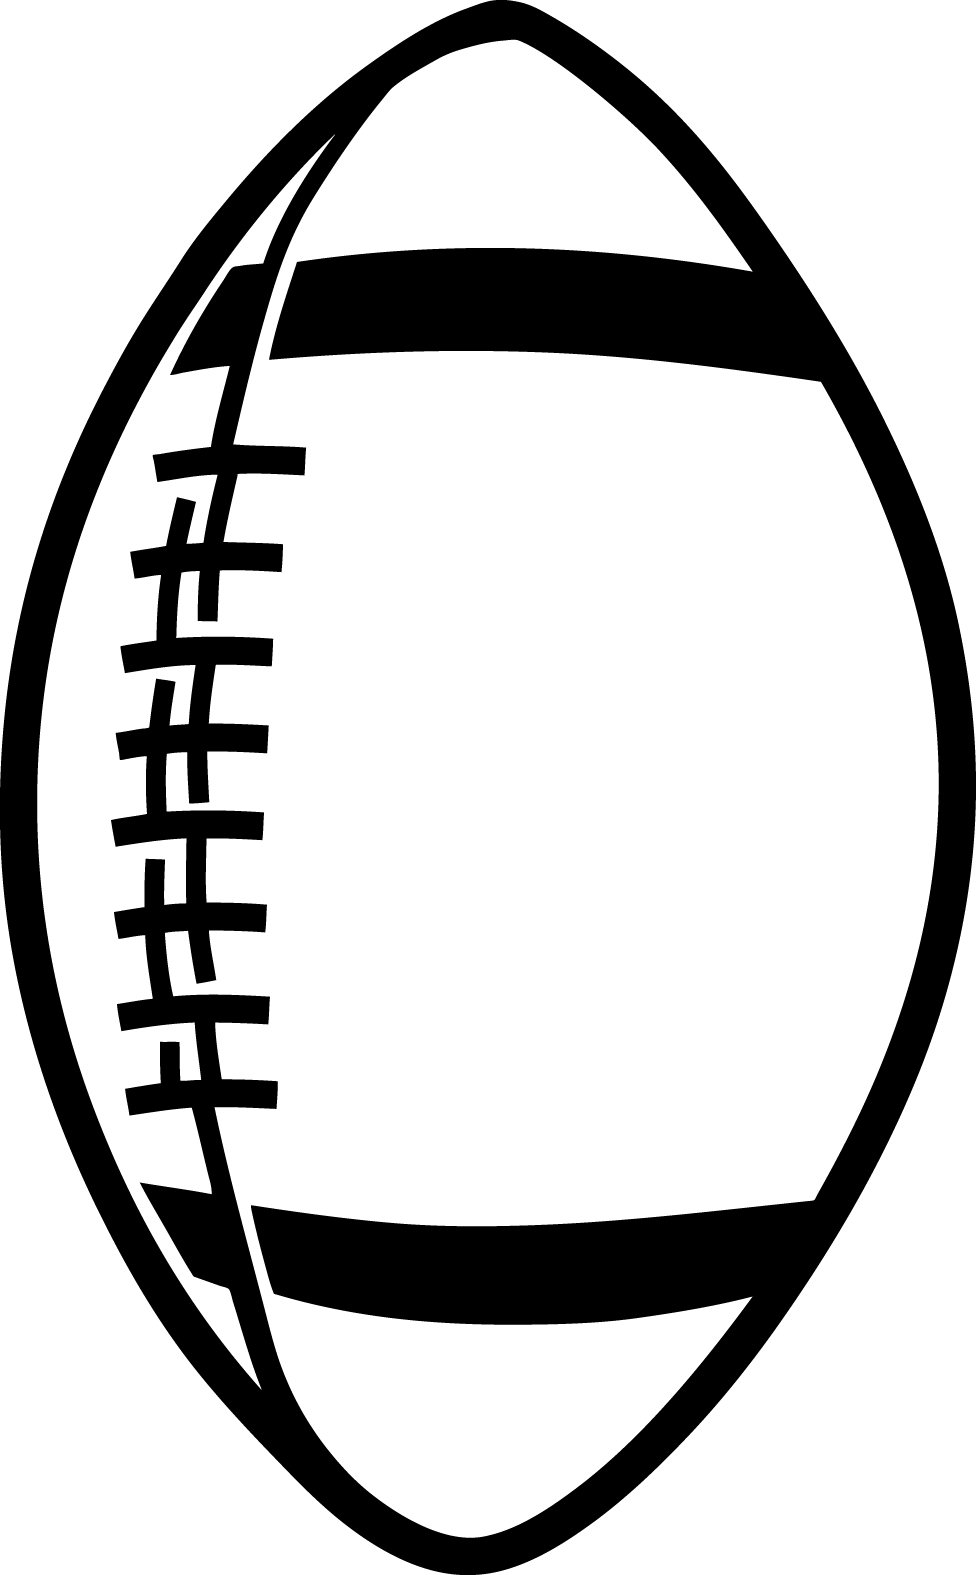 Football Clipart Black And Wh - Football Clipart Black And White